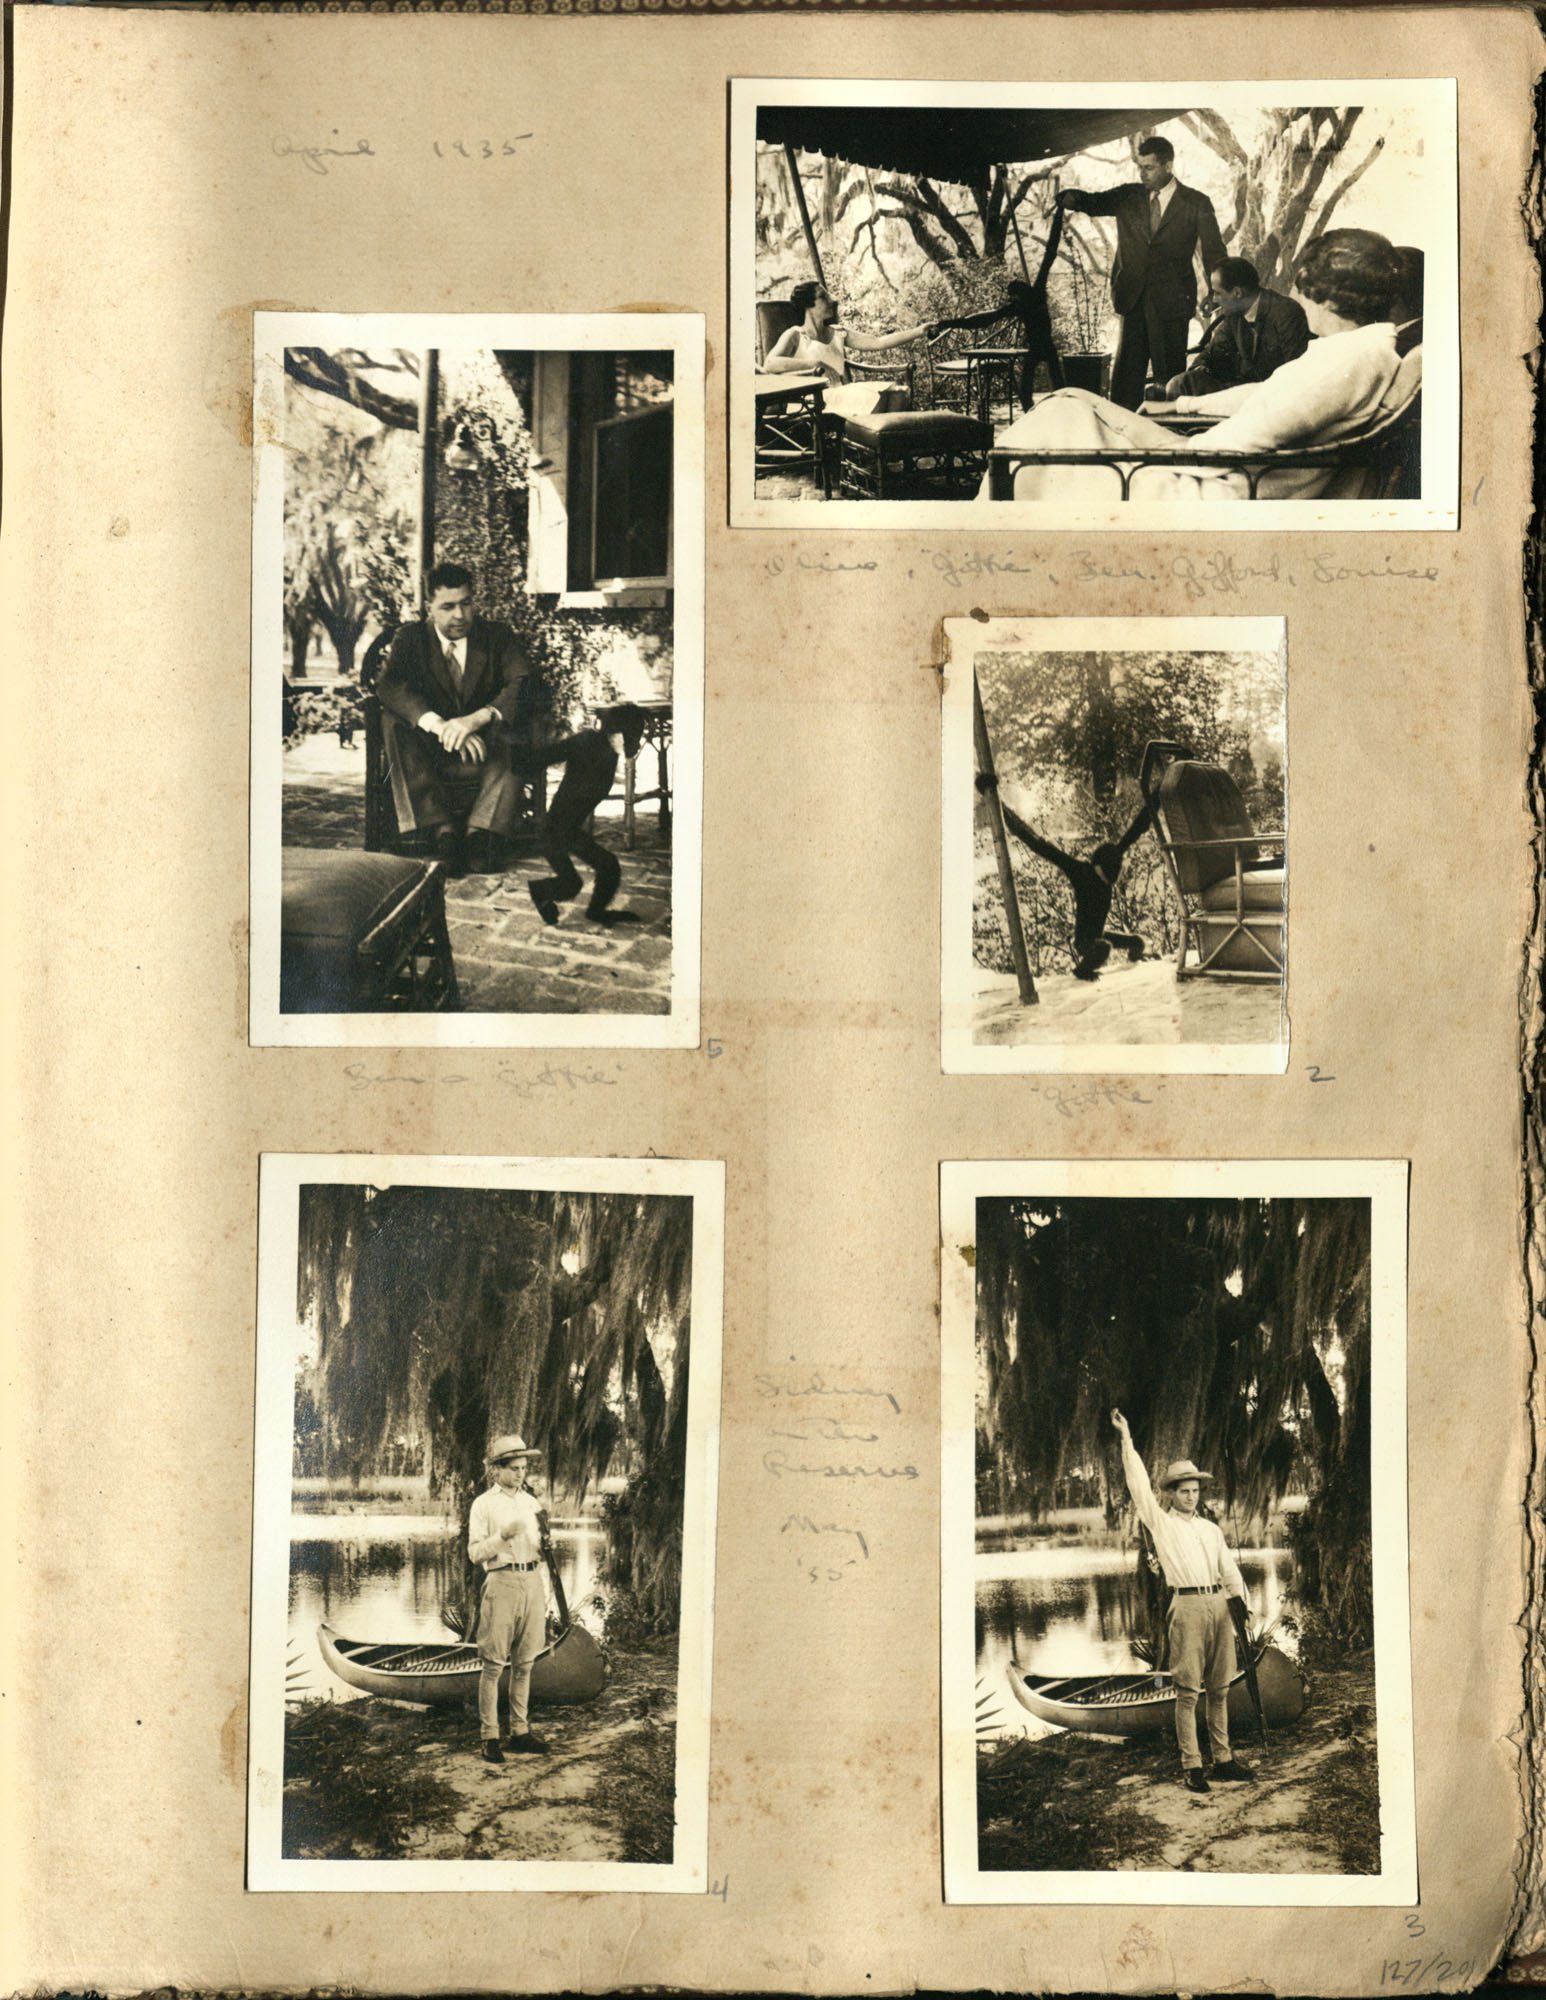 Early Medway and travels album, 1929-1937, page 127